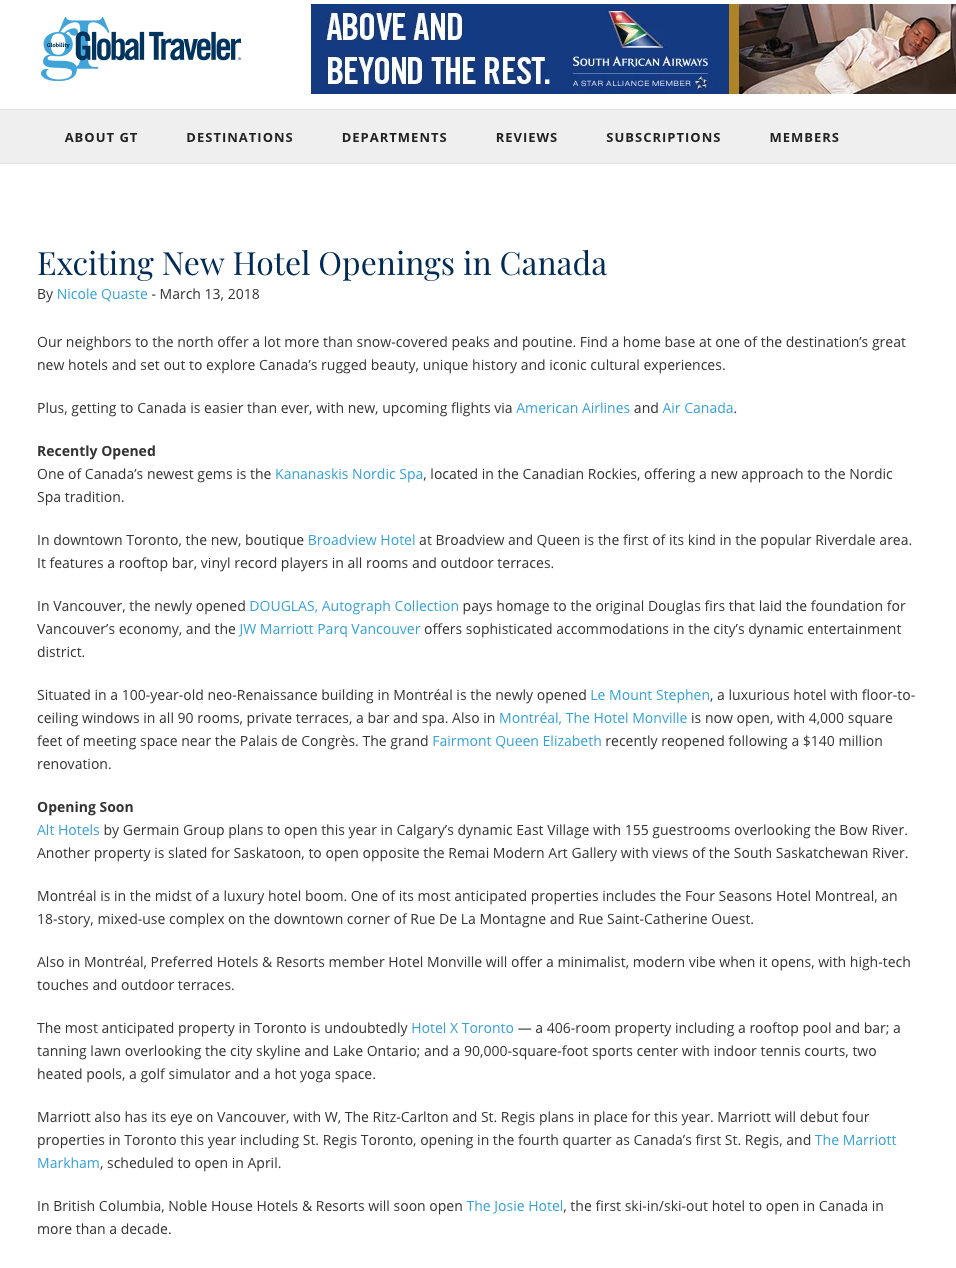 Exciting New Hotel Openings in Canada<br>GLOBAL TRAVELER